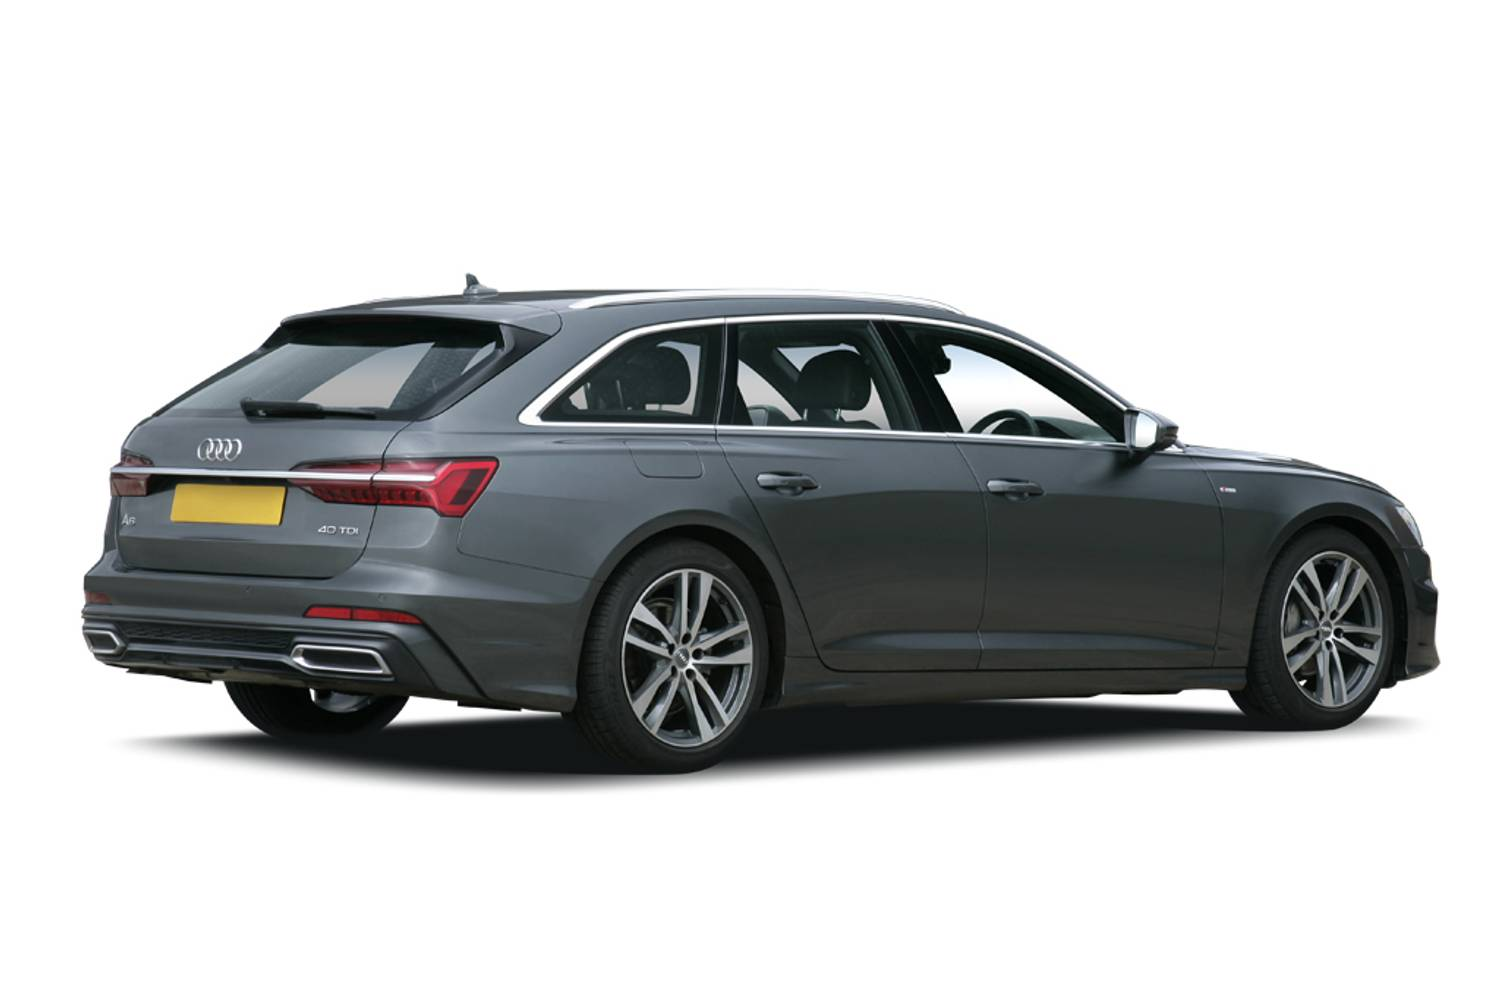 Audi A6 Avant 5dr Rear Three Quarter